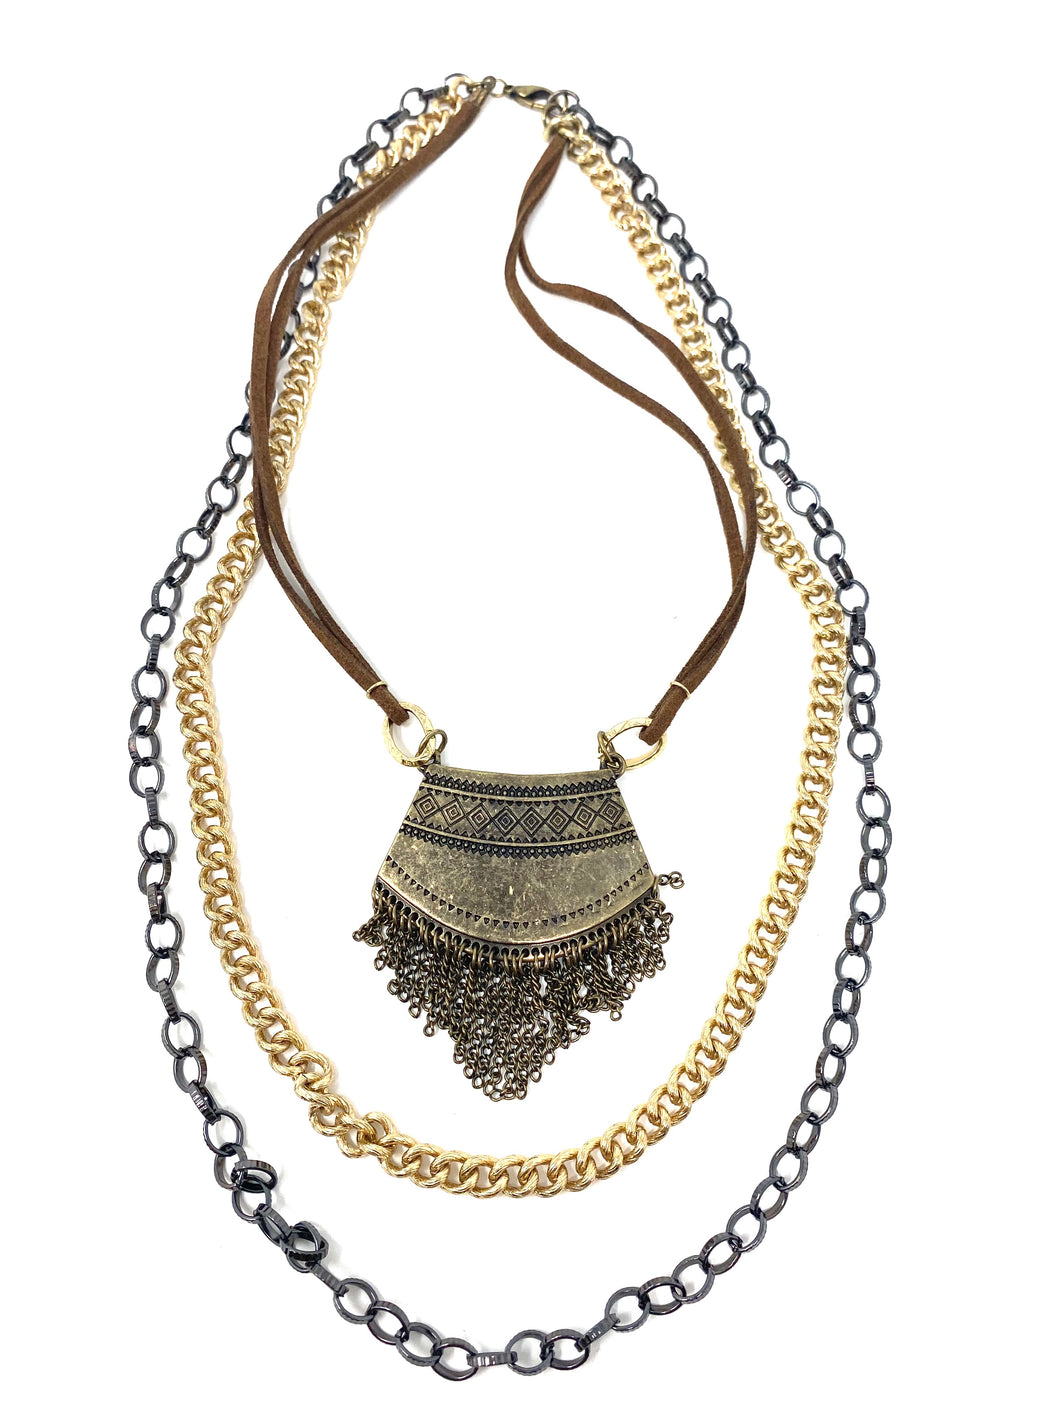 Multi-Layered and Textured Boho Necklace